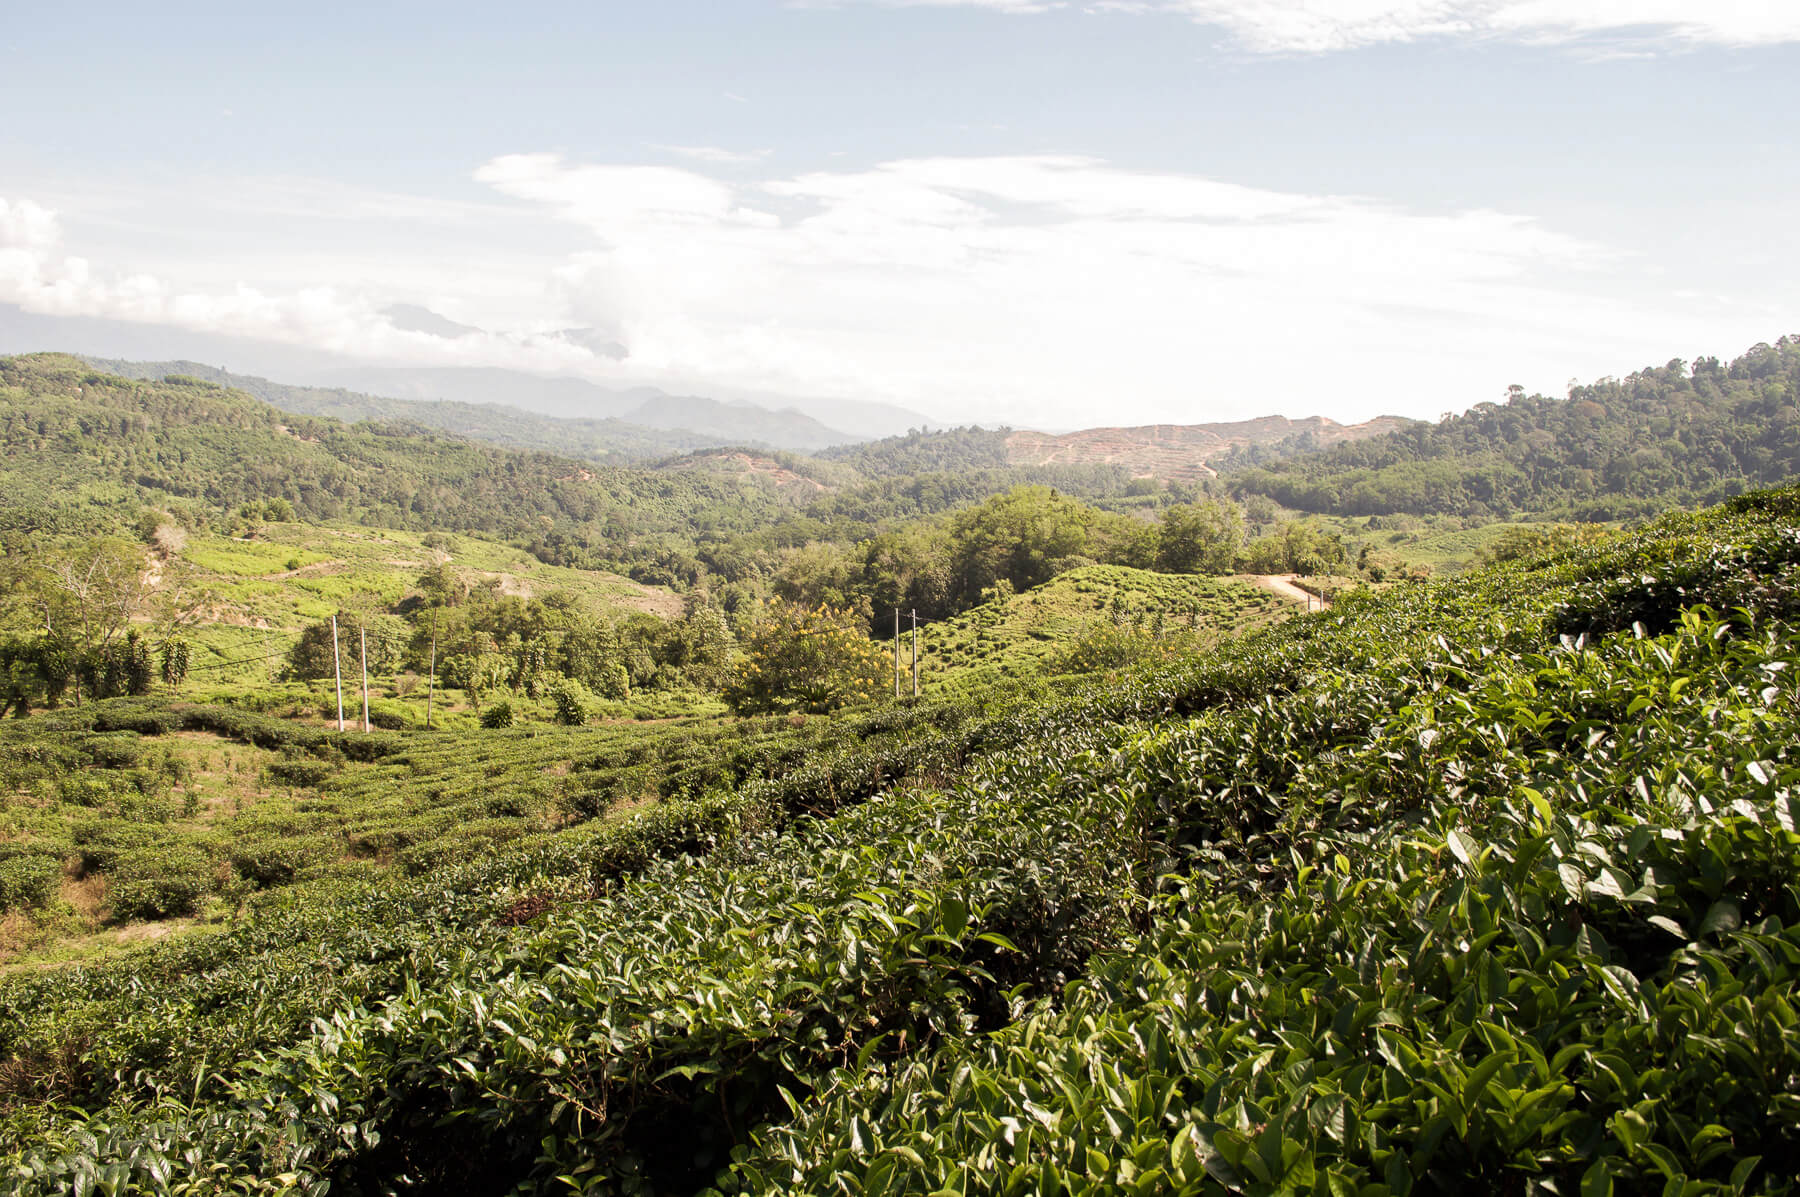 Tea plantations on the side of the hill with a beautiful mountain view